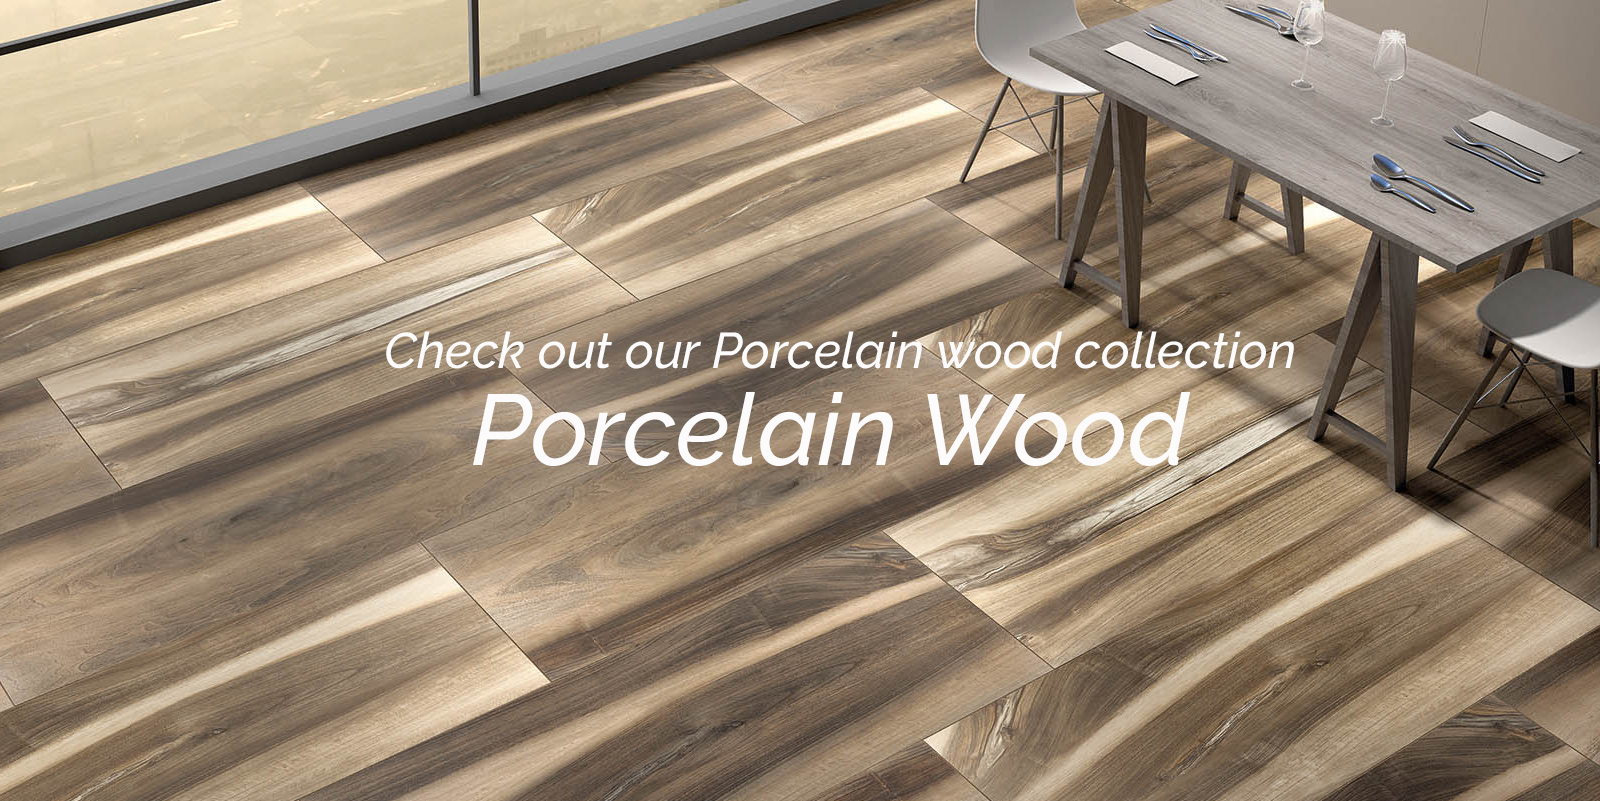 Tilesdirect buy discount tiles online tile store porcelain wood tiles dailygadgetfo Image collections